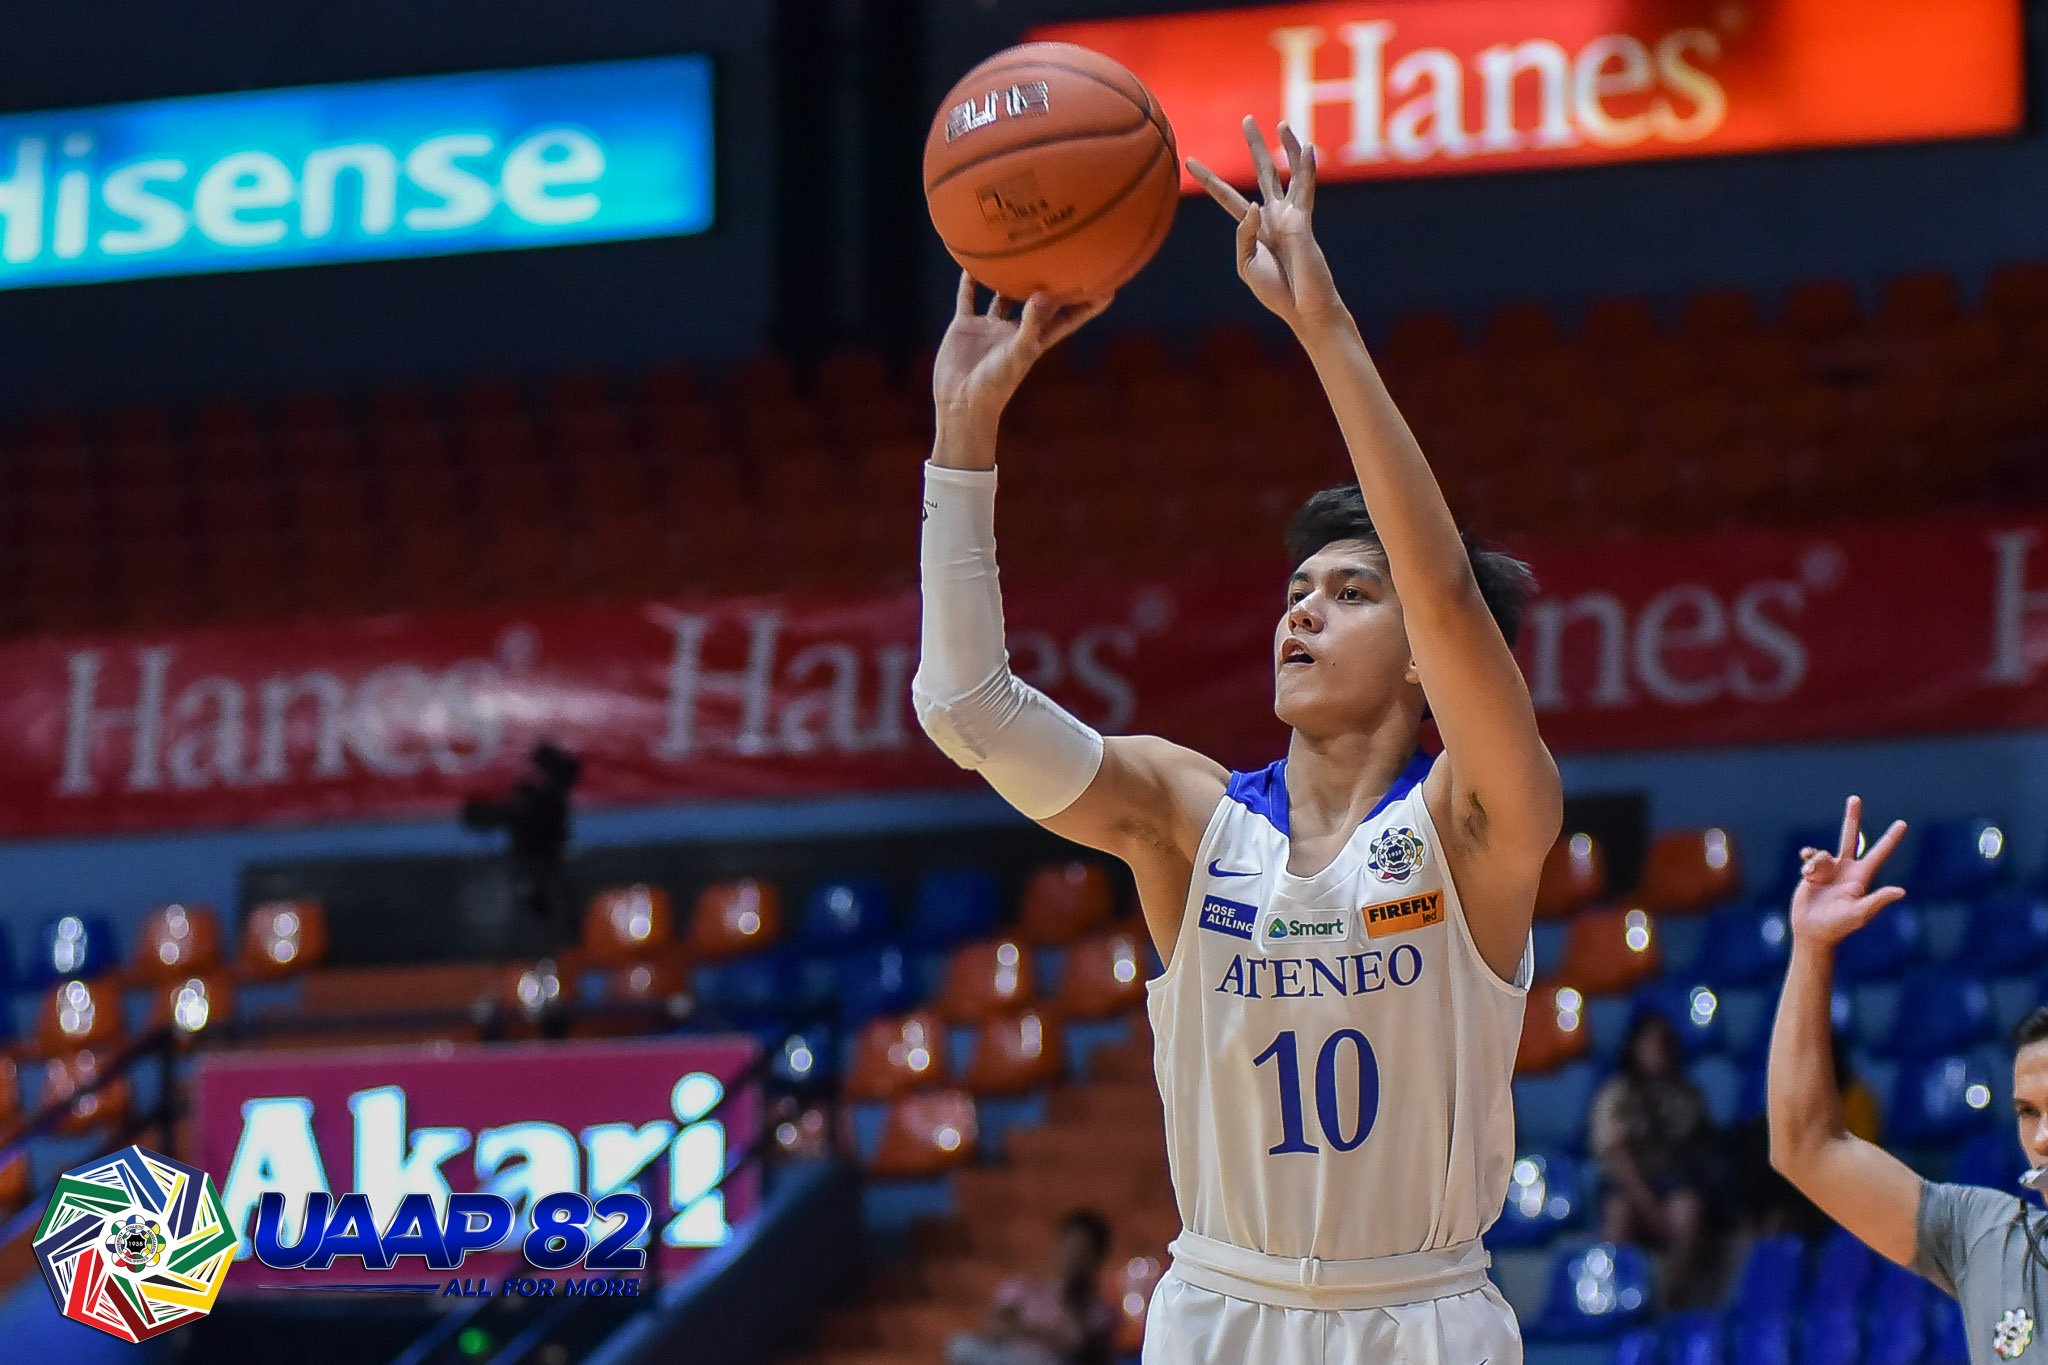 Tiebreaker Times Forthsky Padrigao to remain in Ateneo for college ADMU Basketball News UAAP  UAAP Season 84 Men's bASKETBALL UAAP Season 84 UAAP Season 83 Boys Basketball UAAP Season 83 Forthsky Padrigao Ateneo Men's Basketball Ateneo Boys Basketball